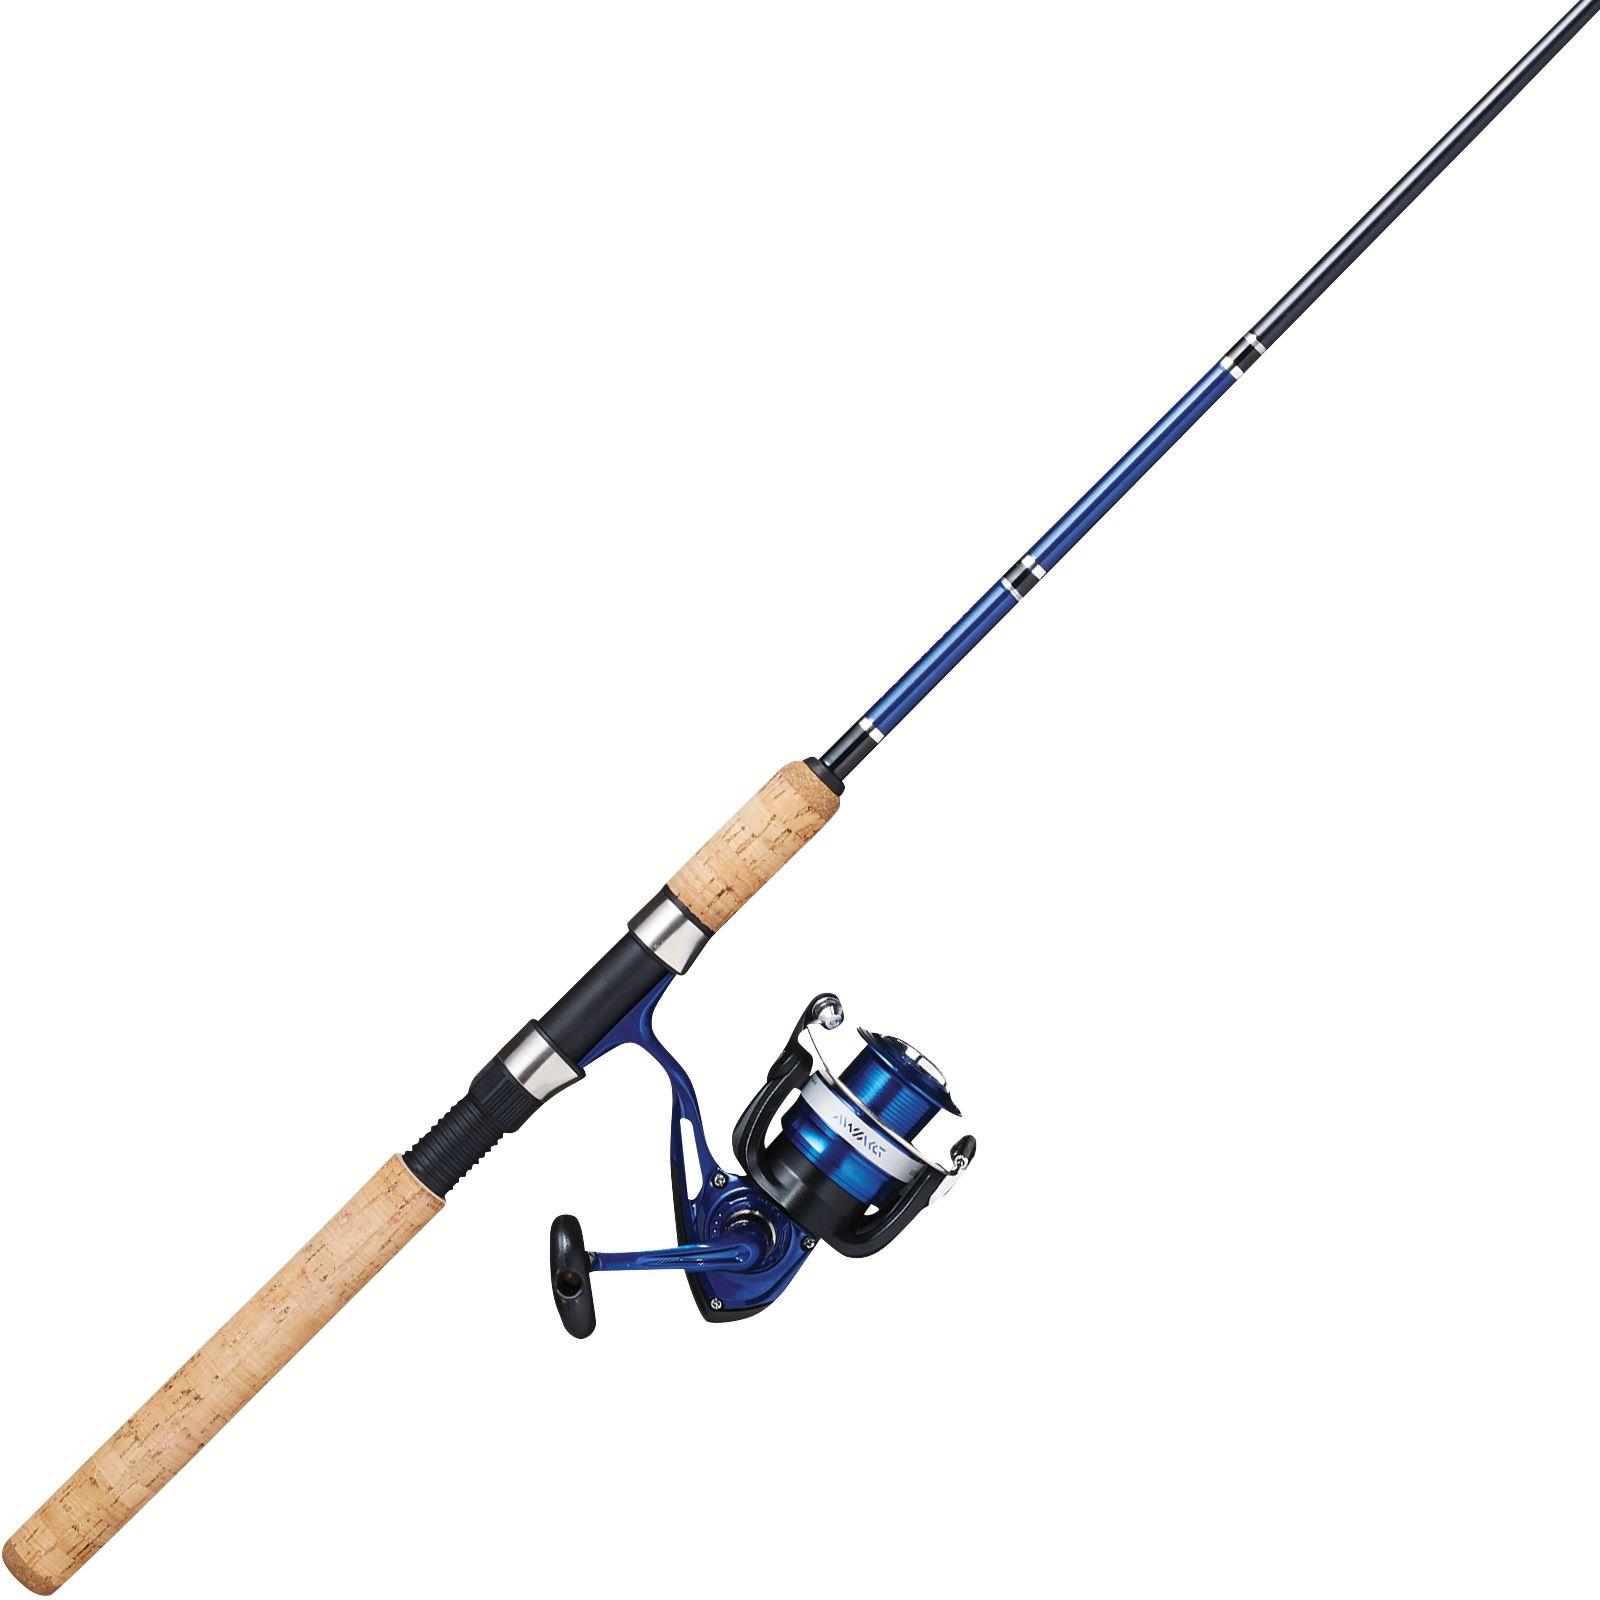 Daiwa samurai x spinning combo field stream for Cheap fishing rods and reels combo